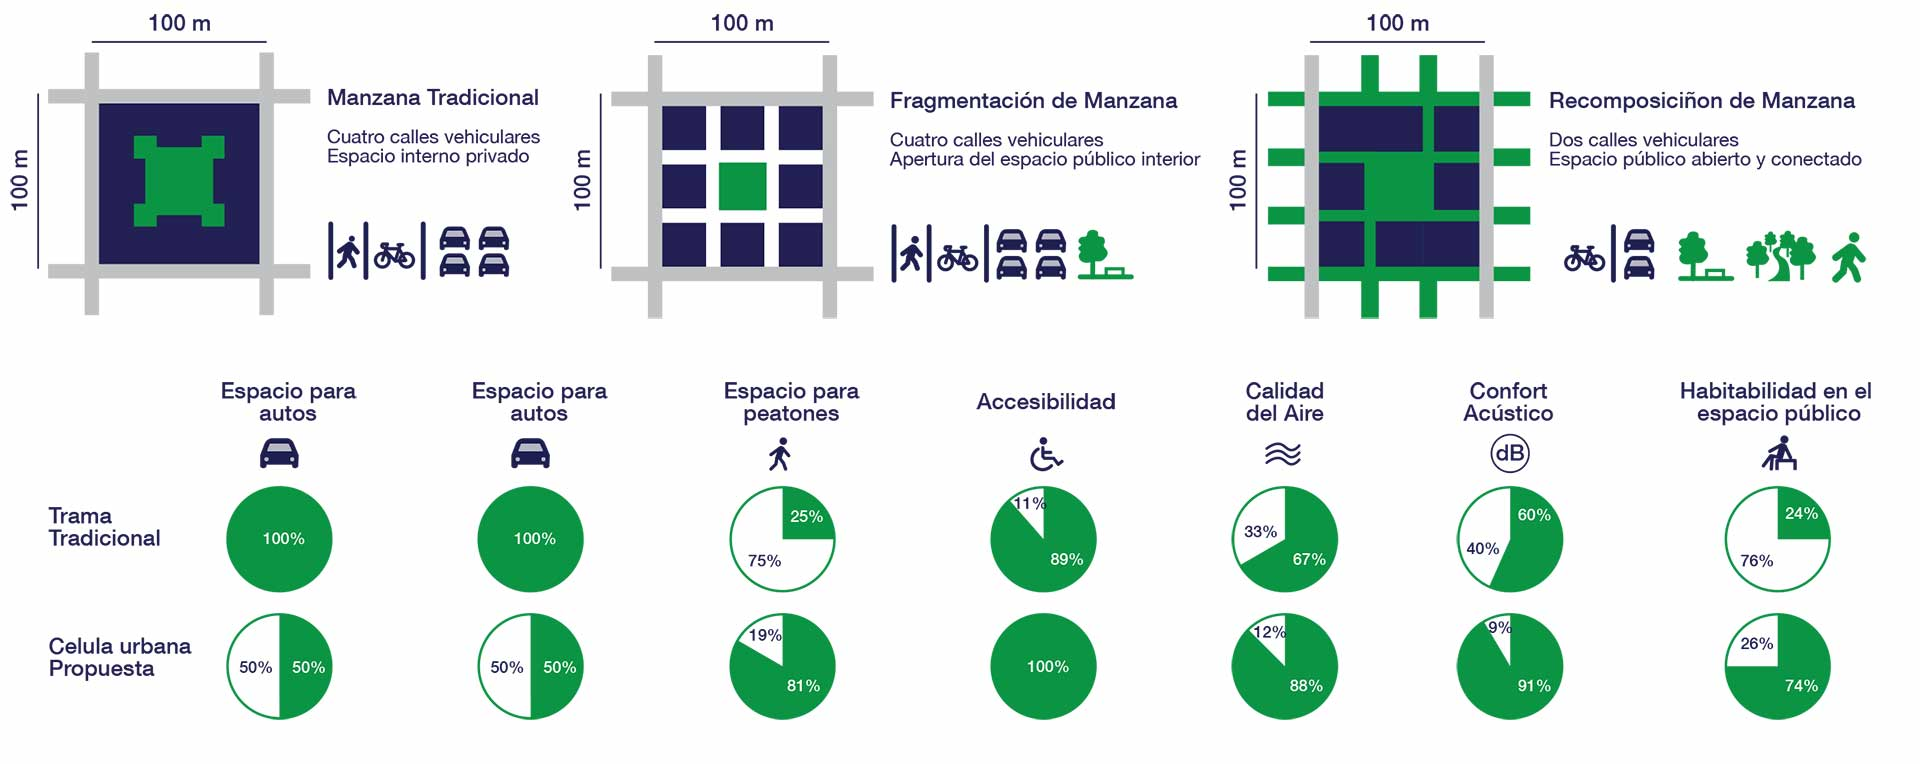 New proposal of apples and super green apples for the city of Buenos Aires and urban indicators of the masterplan